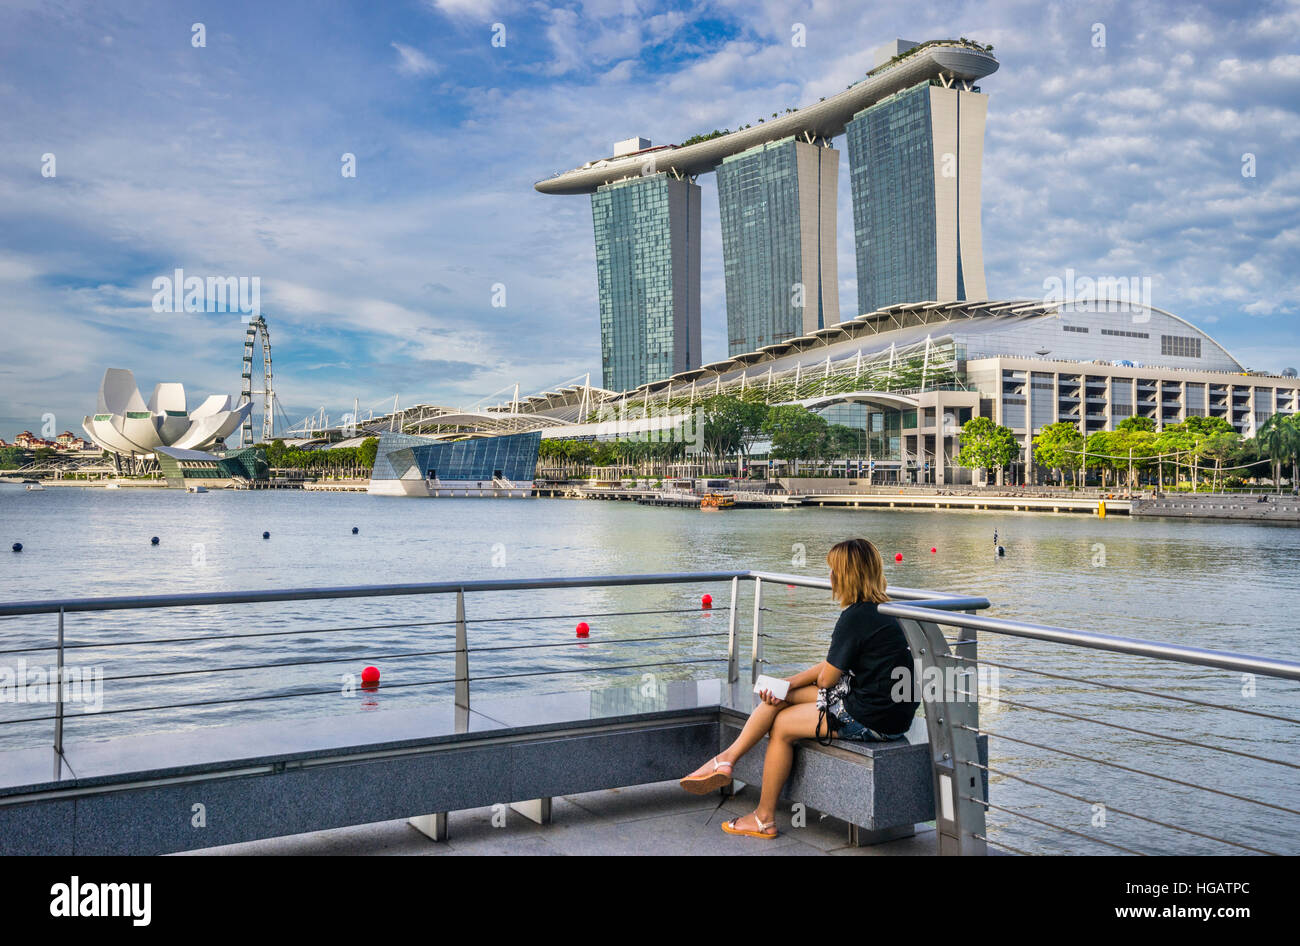 Singapore, view of the Marina Bay Sands resort, the Bayfront Shoppes, the flower-shaped ArtScience Museum and the - Stock Image